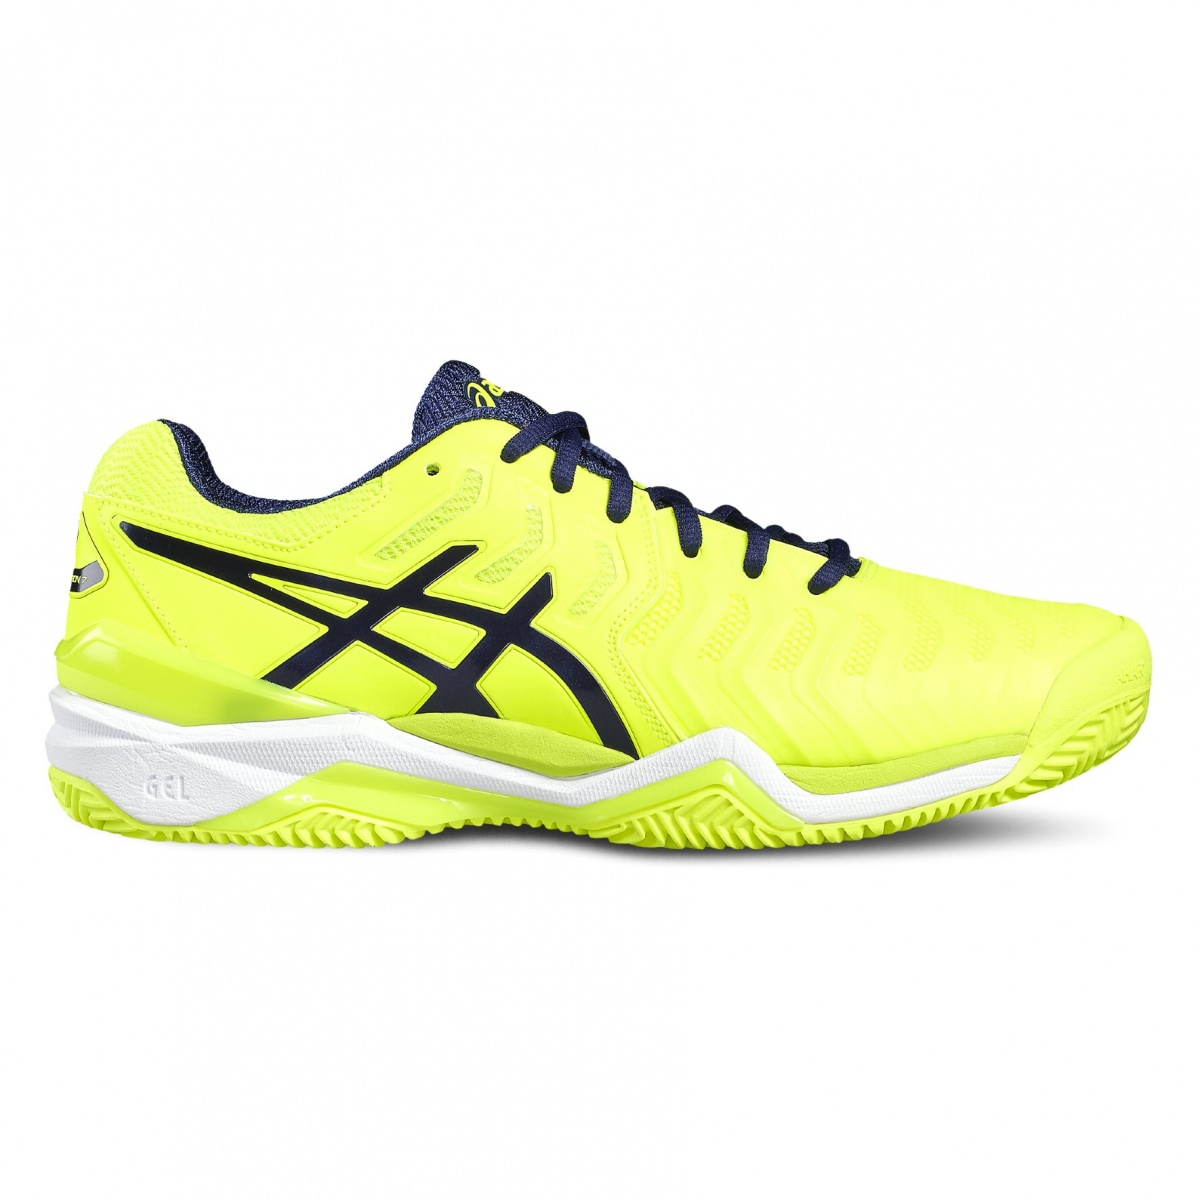 Asics Gel Resolution 7 Clay 2017 gelb Tennisschuhe Herren